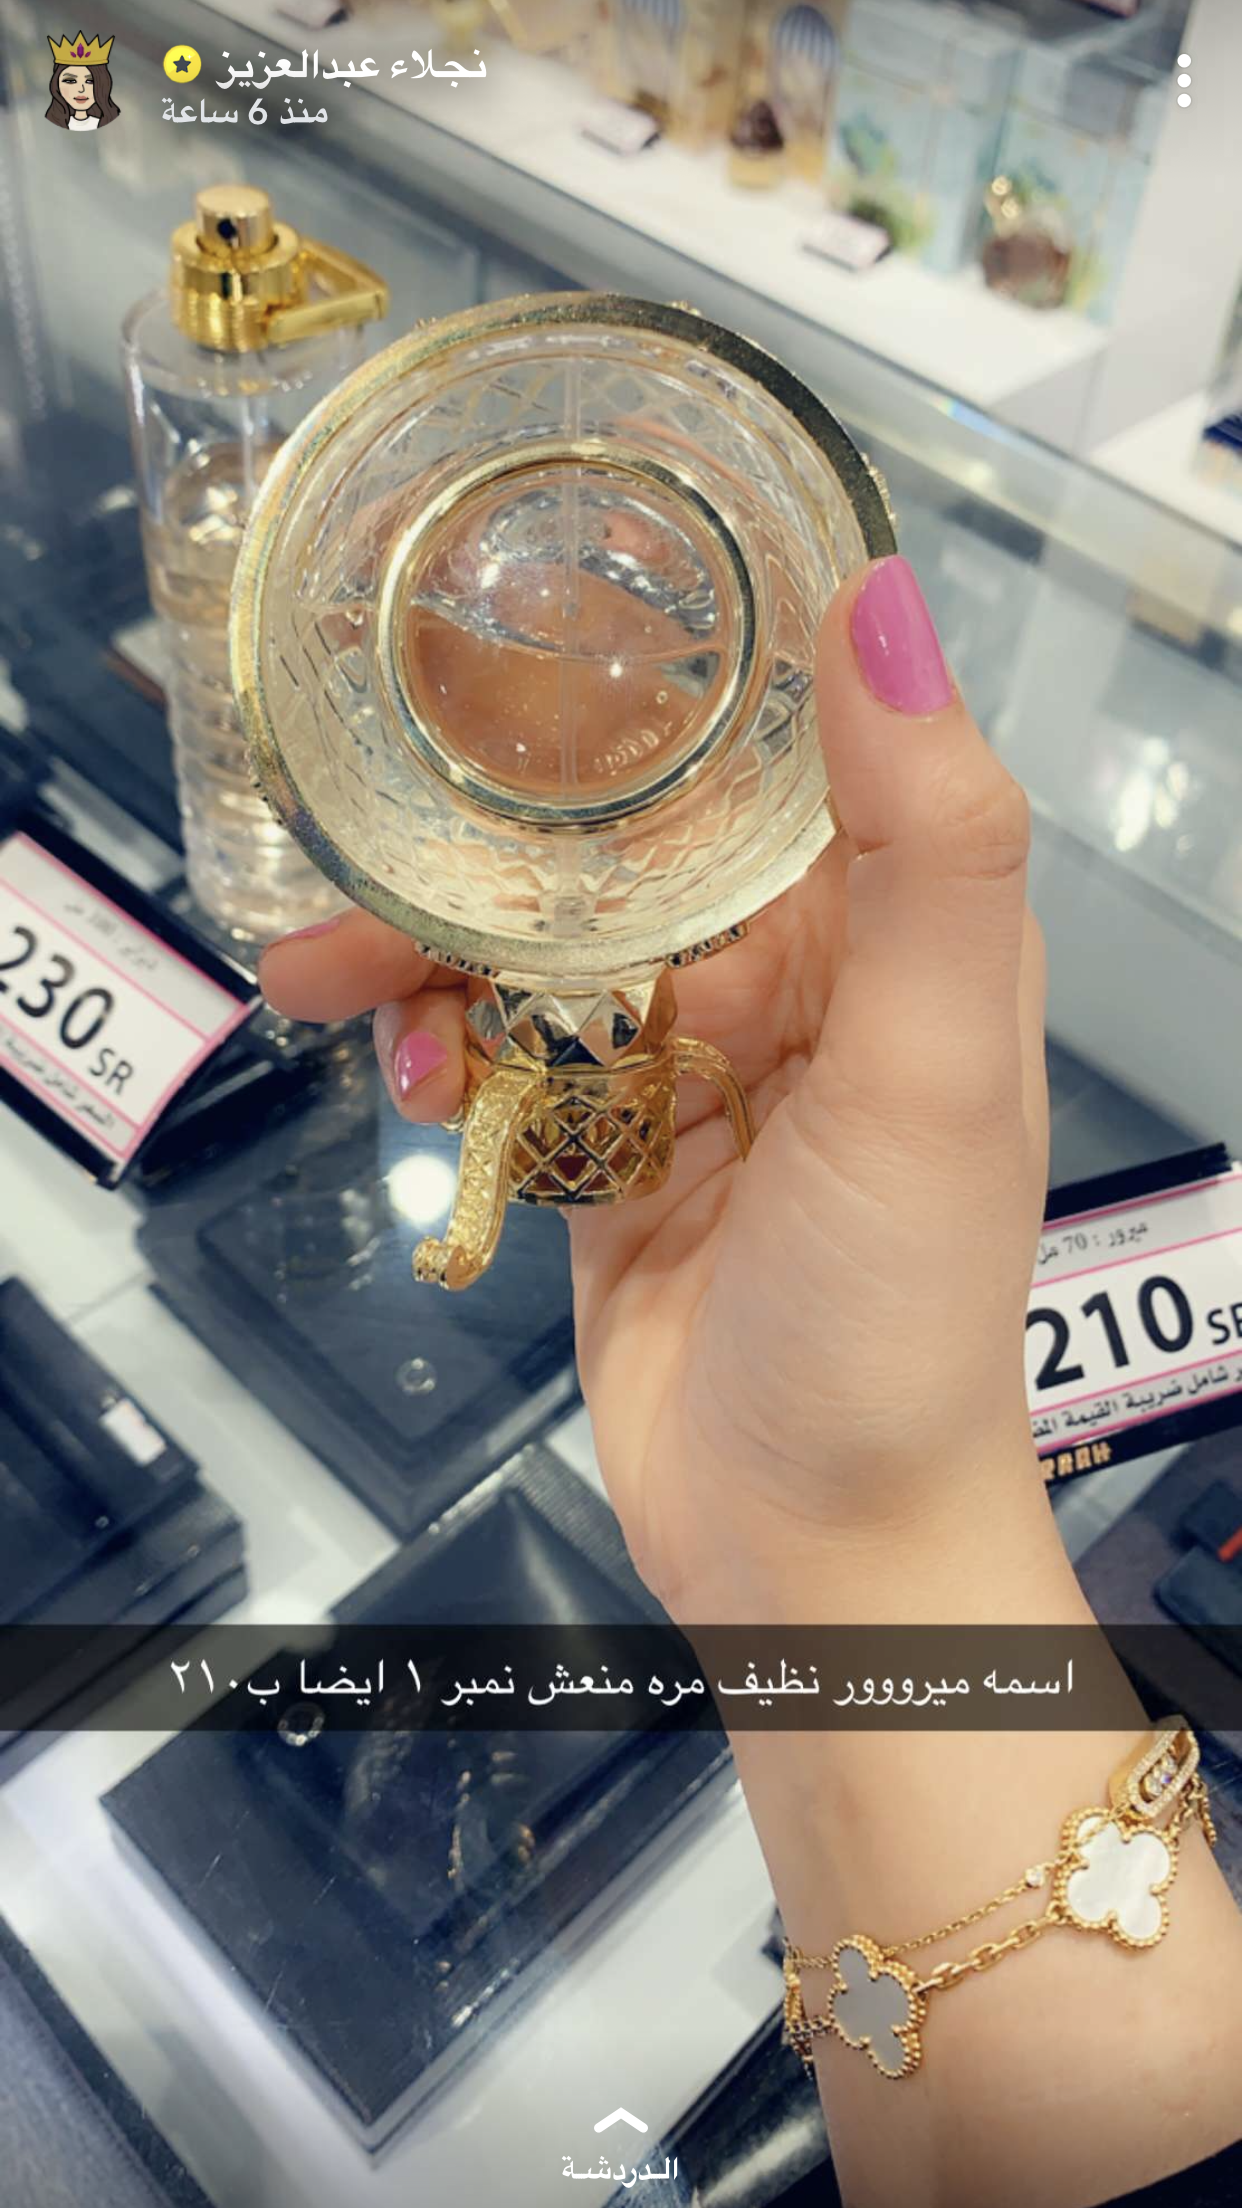 Pin By Soso On عطور Lovely Perfume Hair Care Recipes Skin Care Women